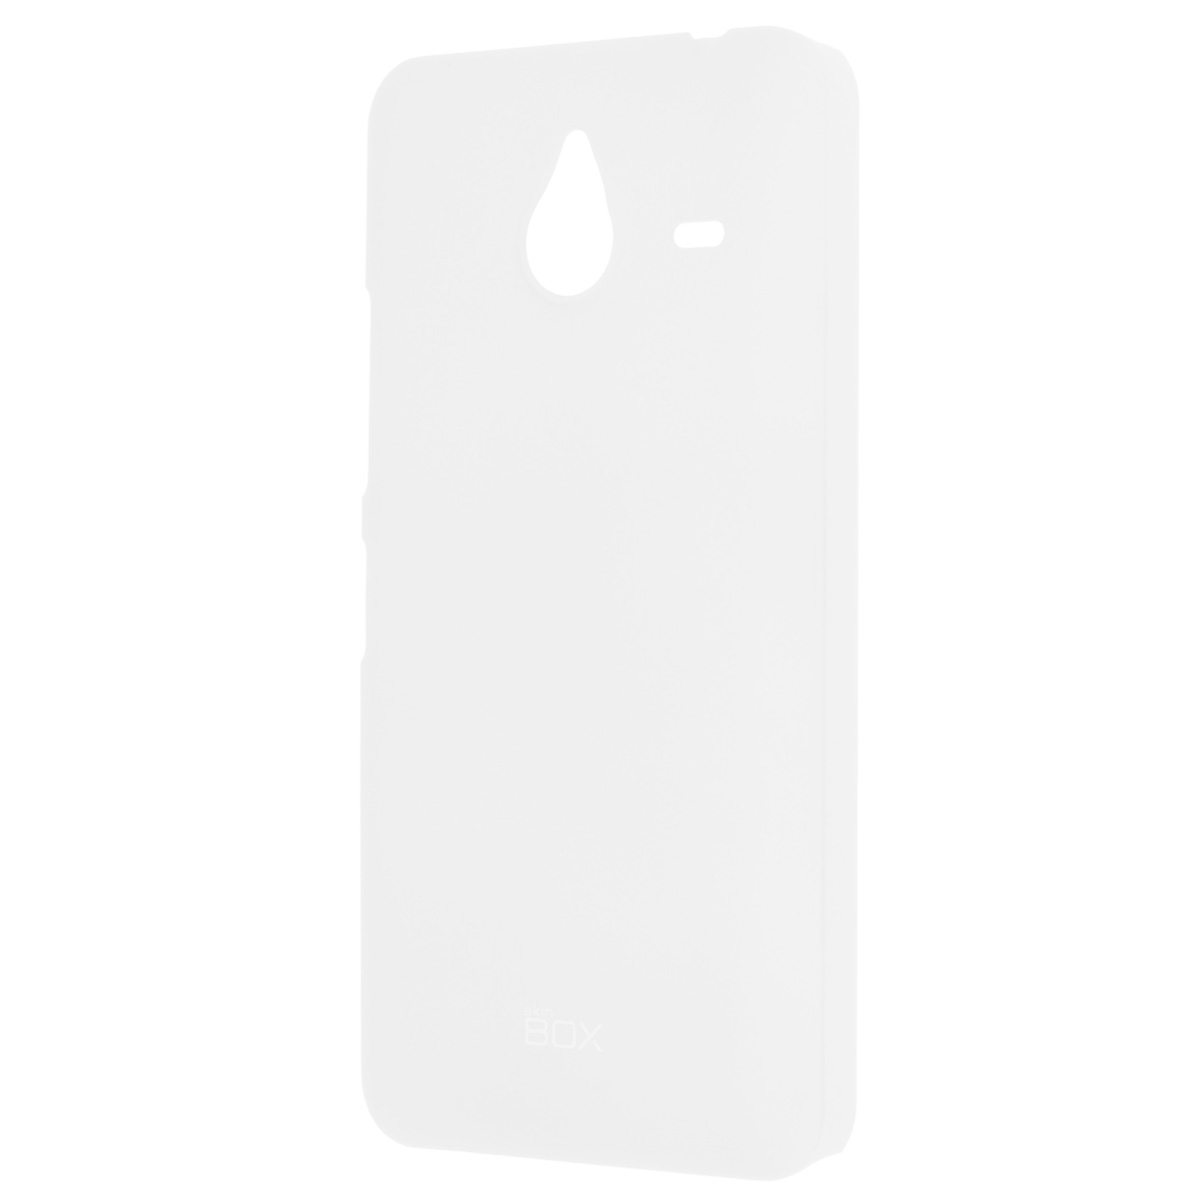 Skinbox Shield 4People чехол для Microsoft Lumia 640XL, White skinbox shield 4people чехол для microsoft lumia 535 white